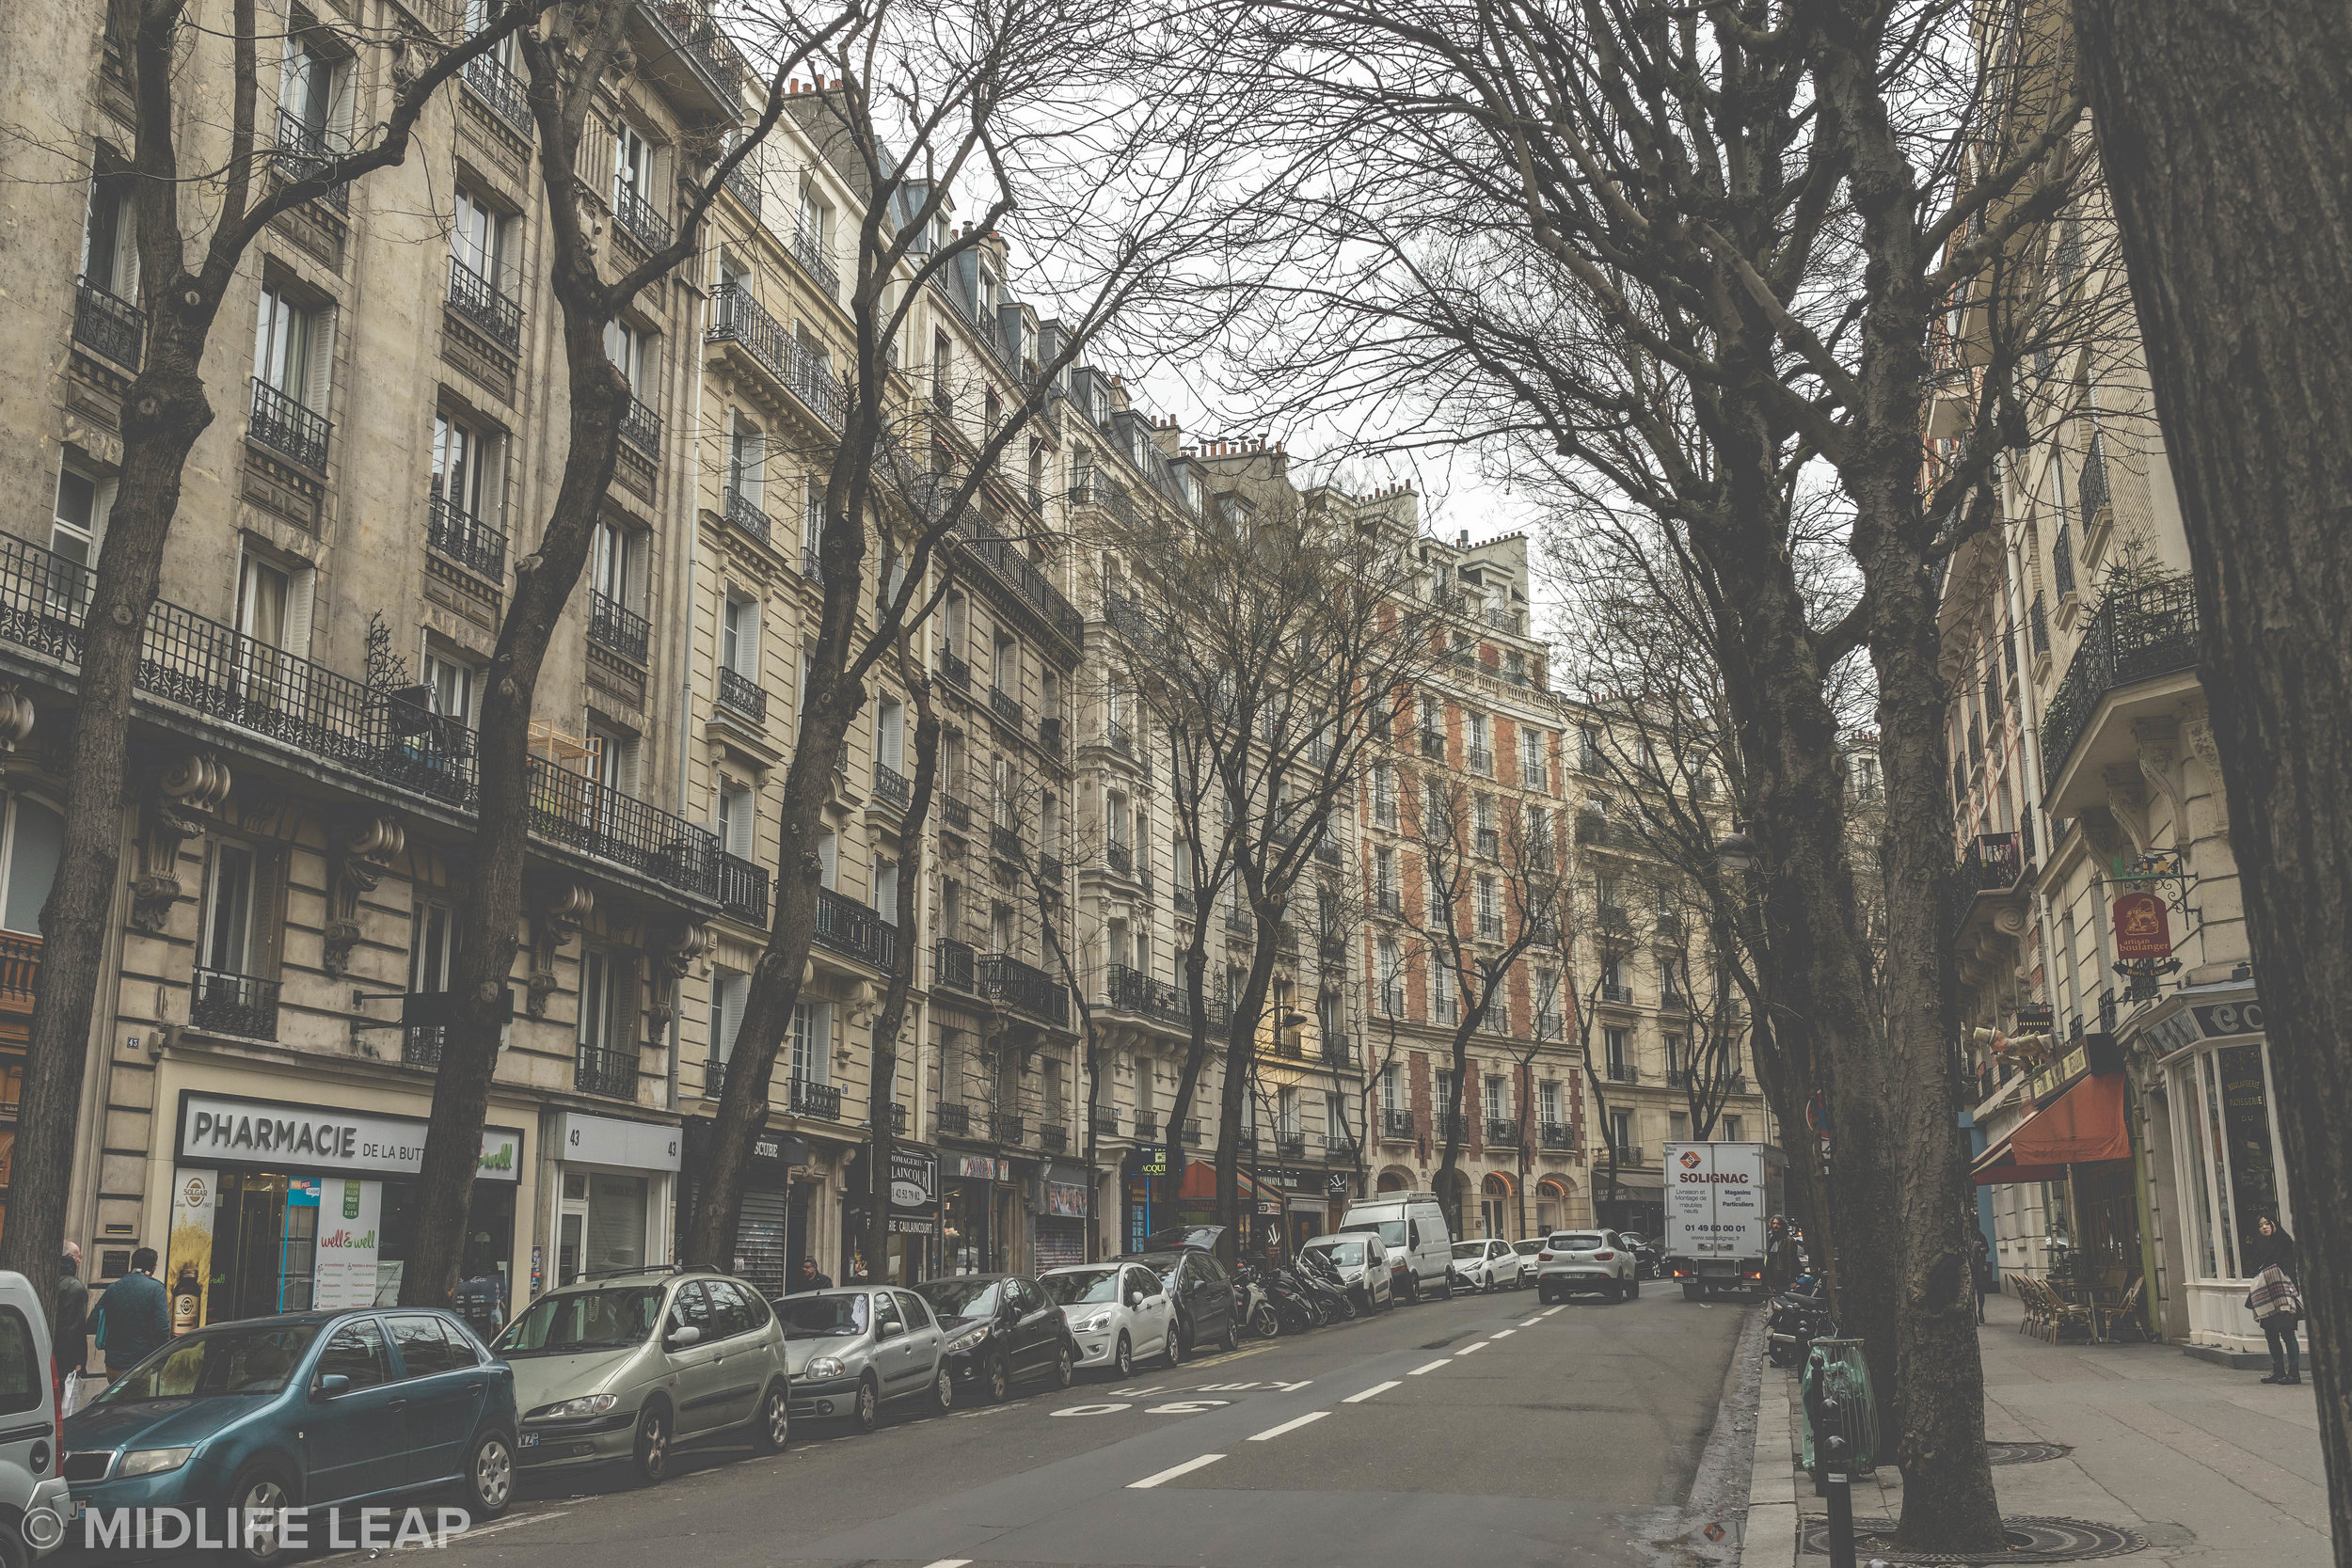 rue-caulaincourt-what-to-do-in-montmartre-18th-arrondissement-paris